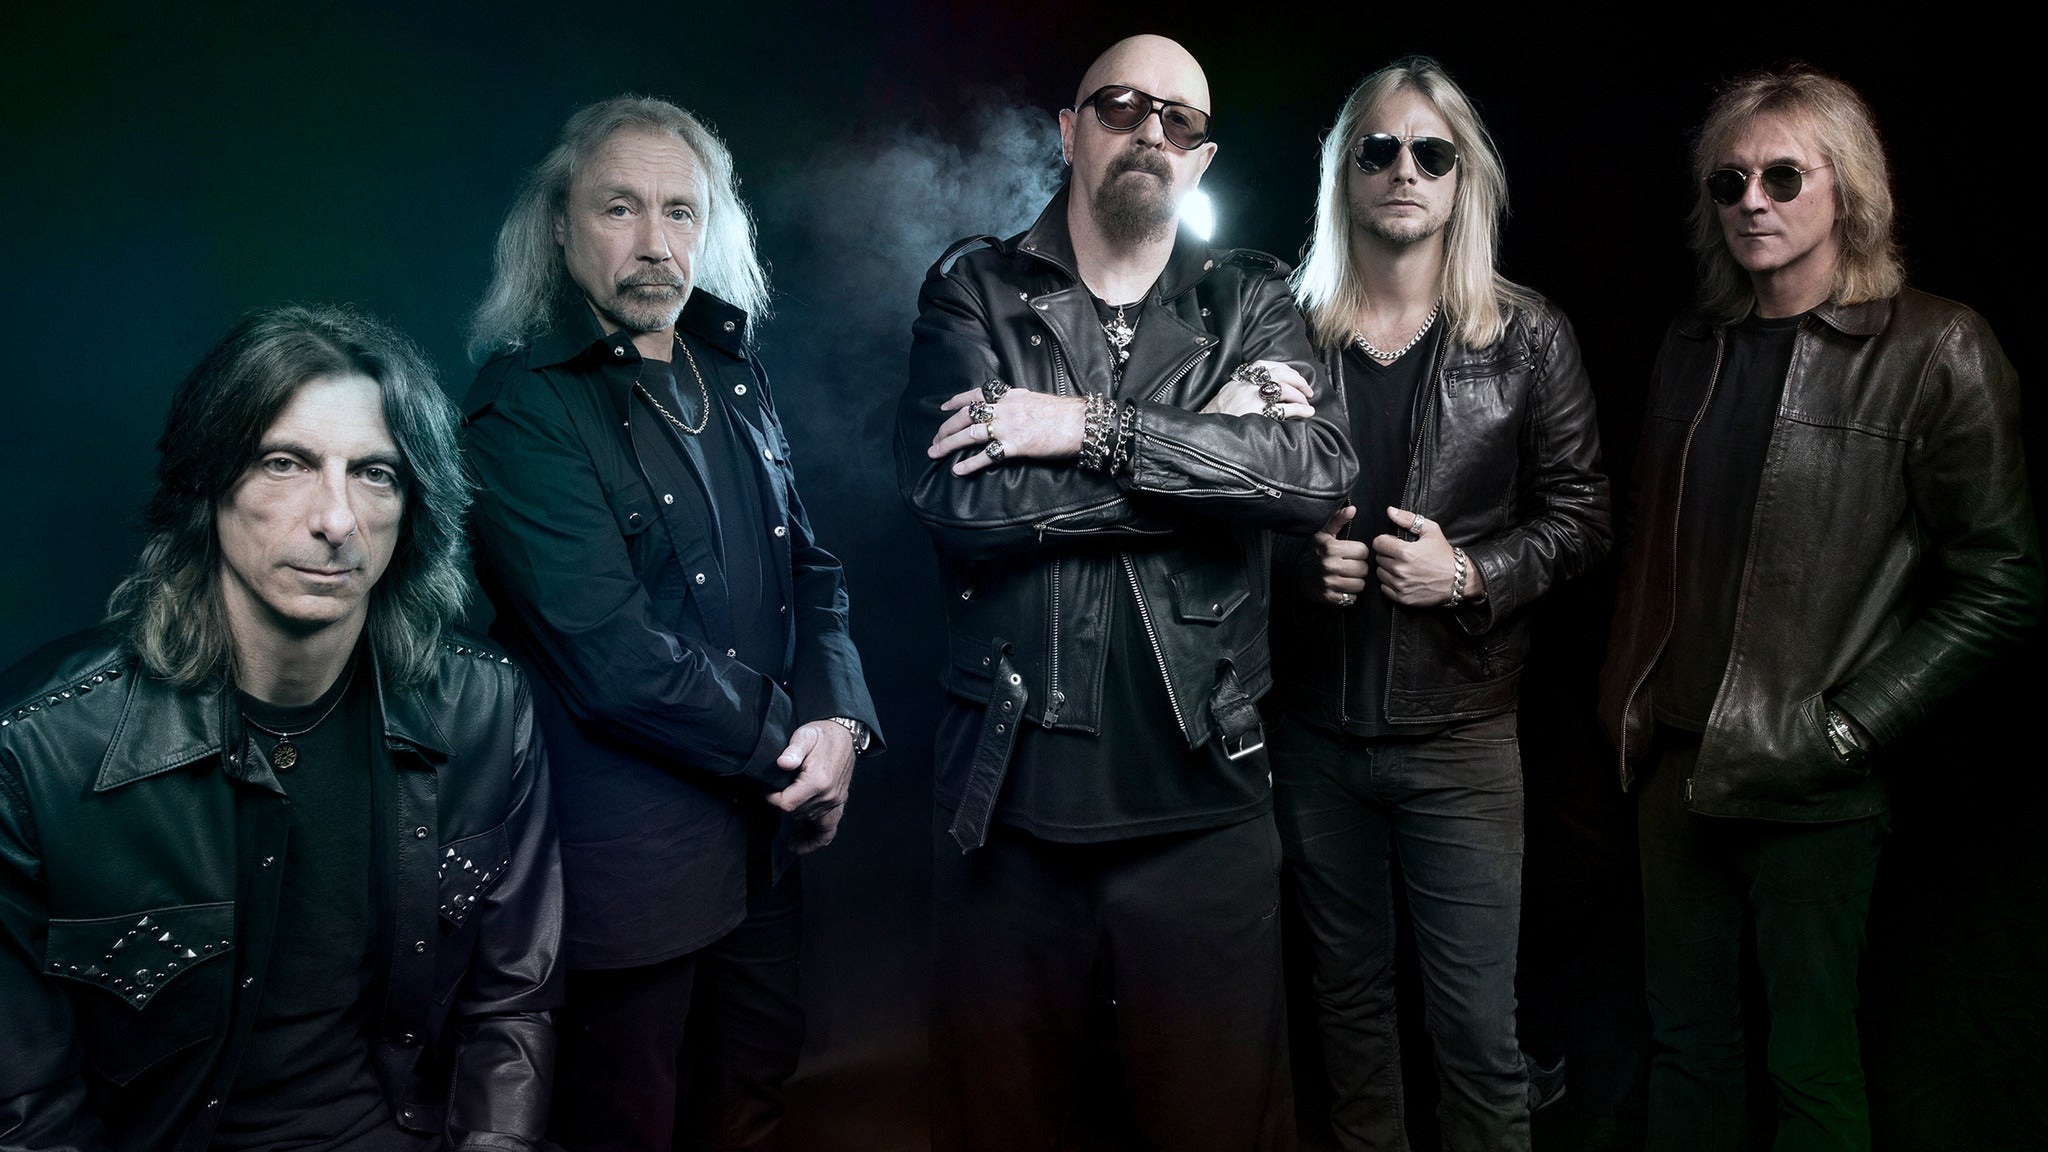 Judas Priest - 50 Heavy Metal Years presale password for performance tickets in  Minneapolis, MN (Armory)